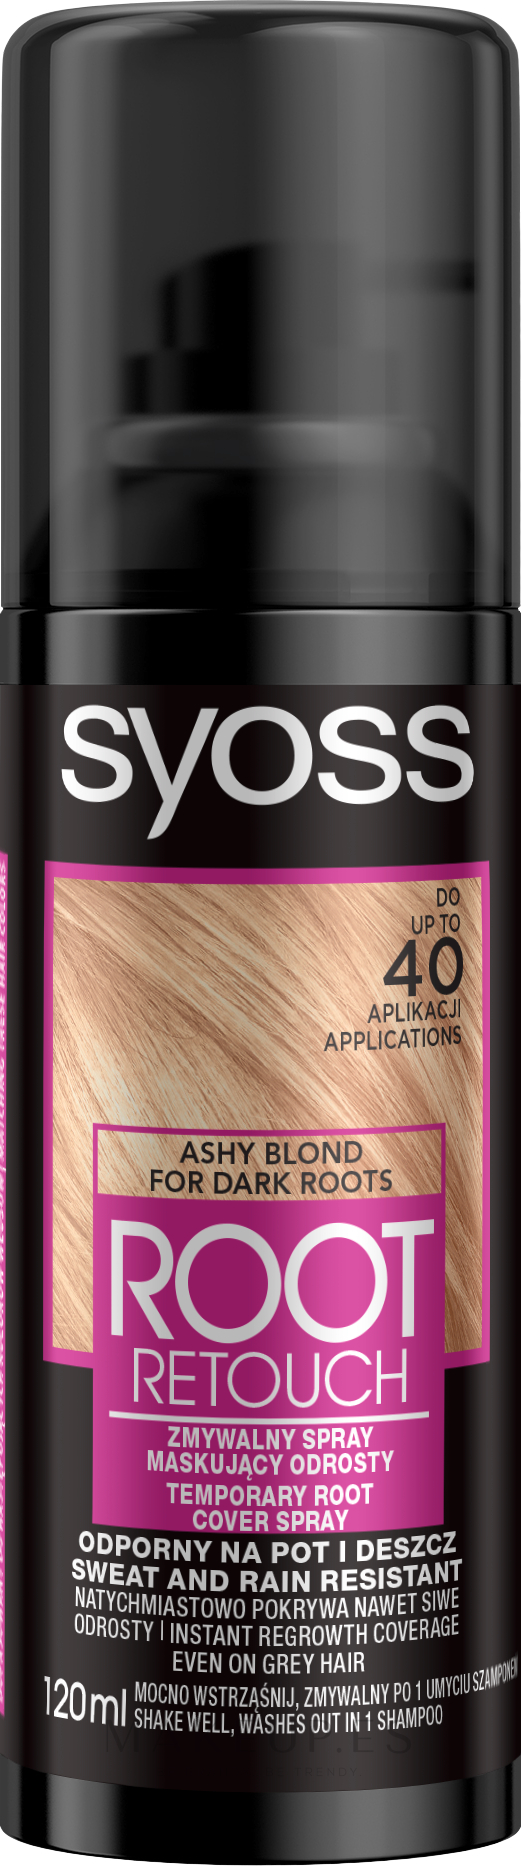 Spray temporal cubre raíces - Syoss Root Retoucher Spray — imagen Ashy Blond